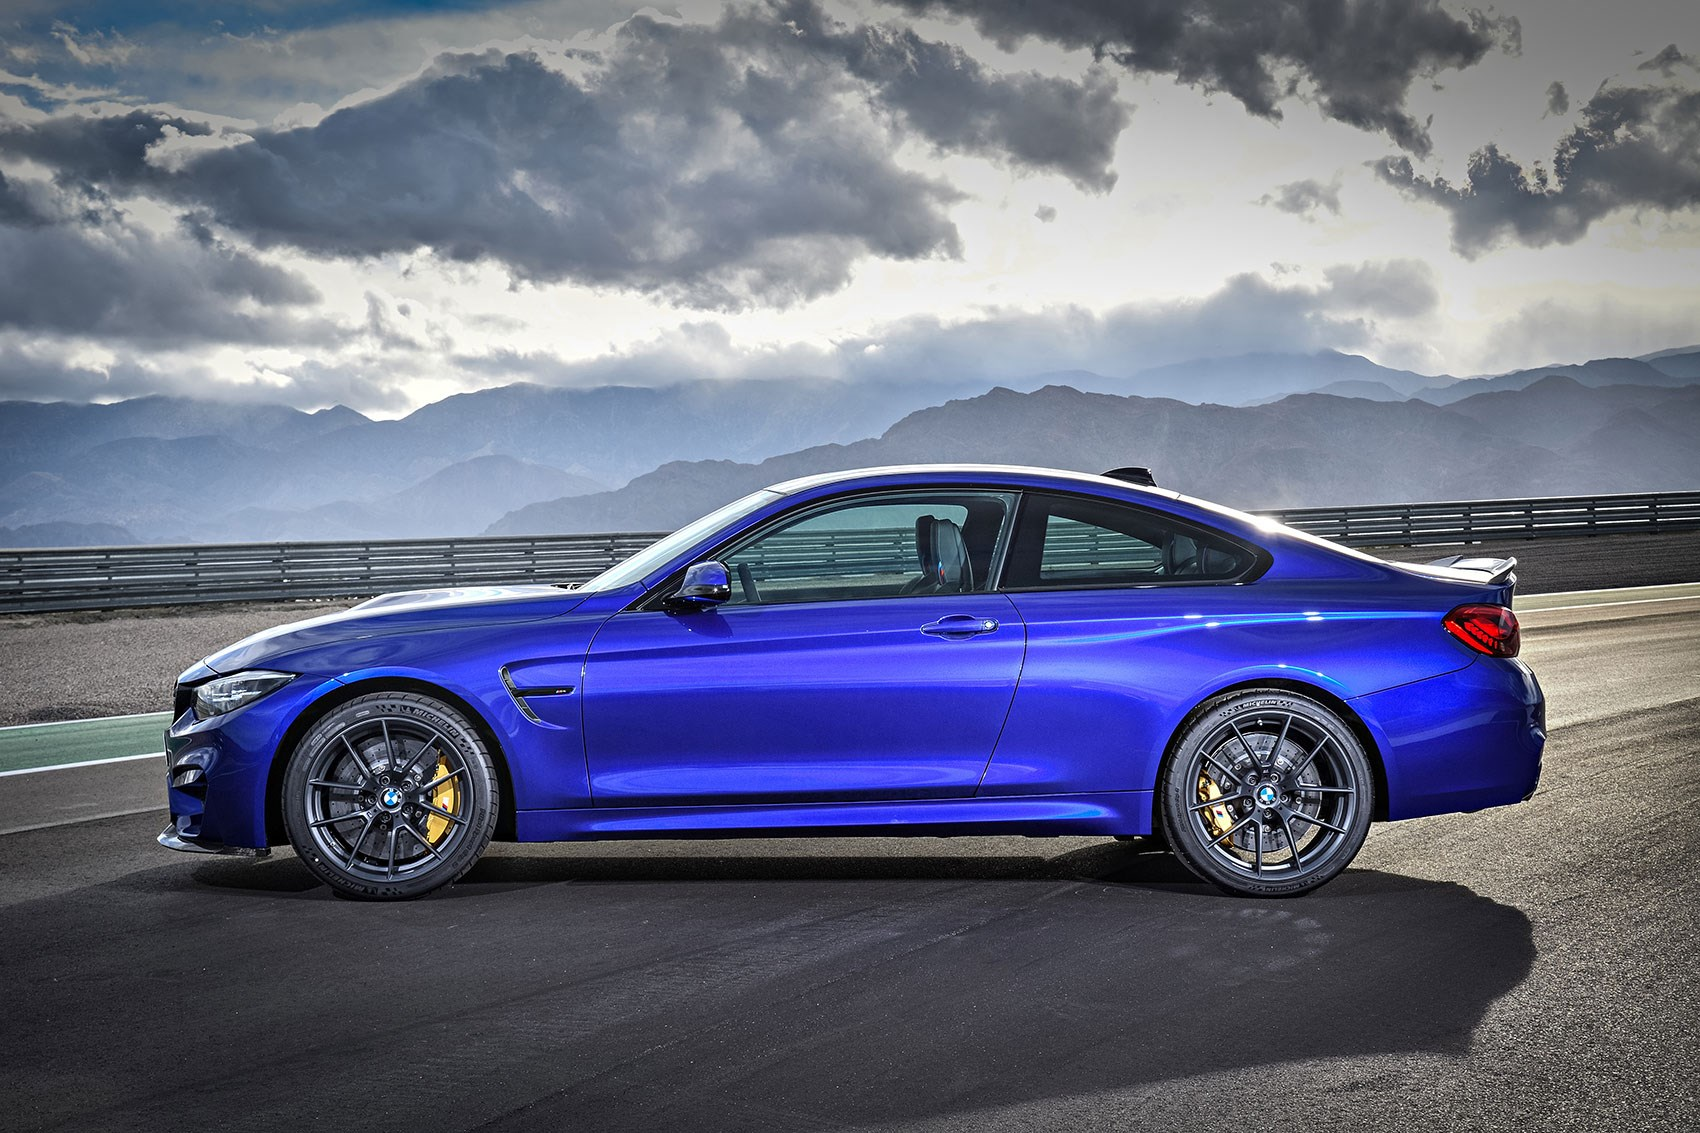 new bmw m4 cs unveiled at 2017 shanghai motor show car. Black Bedroom Furniture Sets. Home Design Ideas